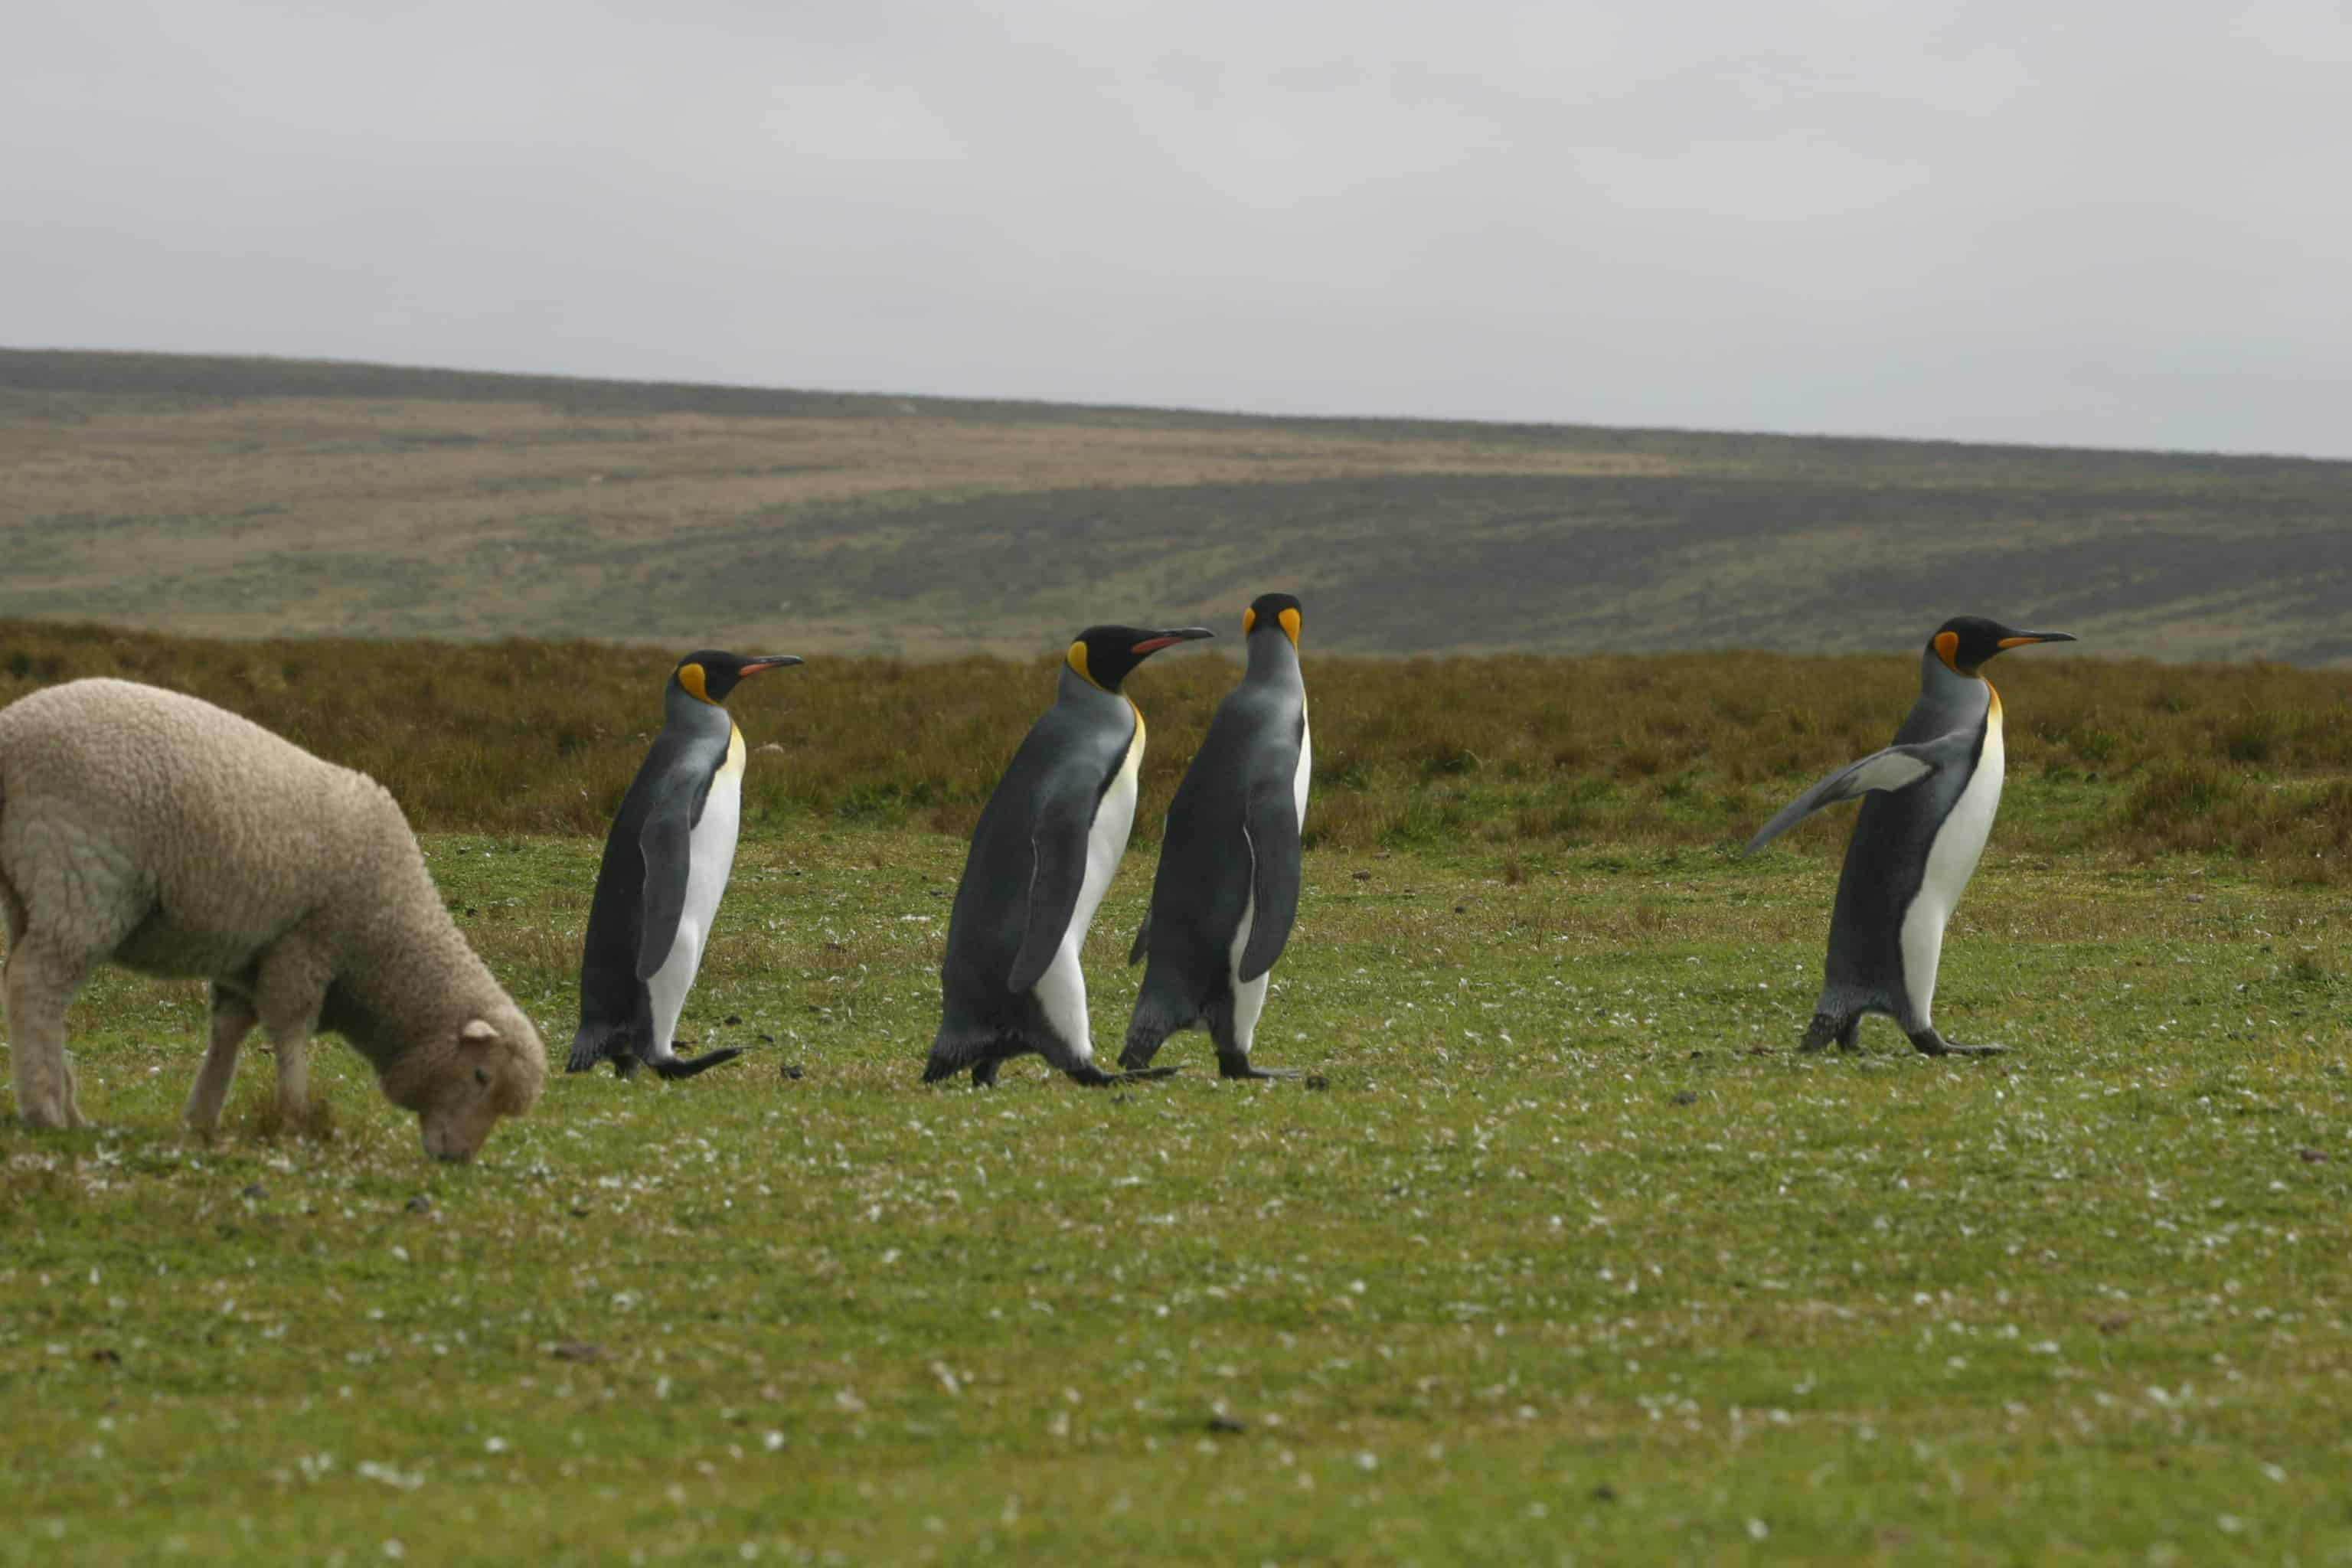 King penguins, returning from fishing to their colony at Volunteer Point, march past sheep. Copyright: Dr Mike Pienkowski